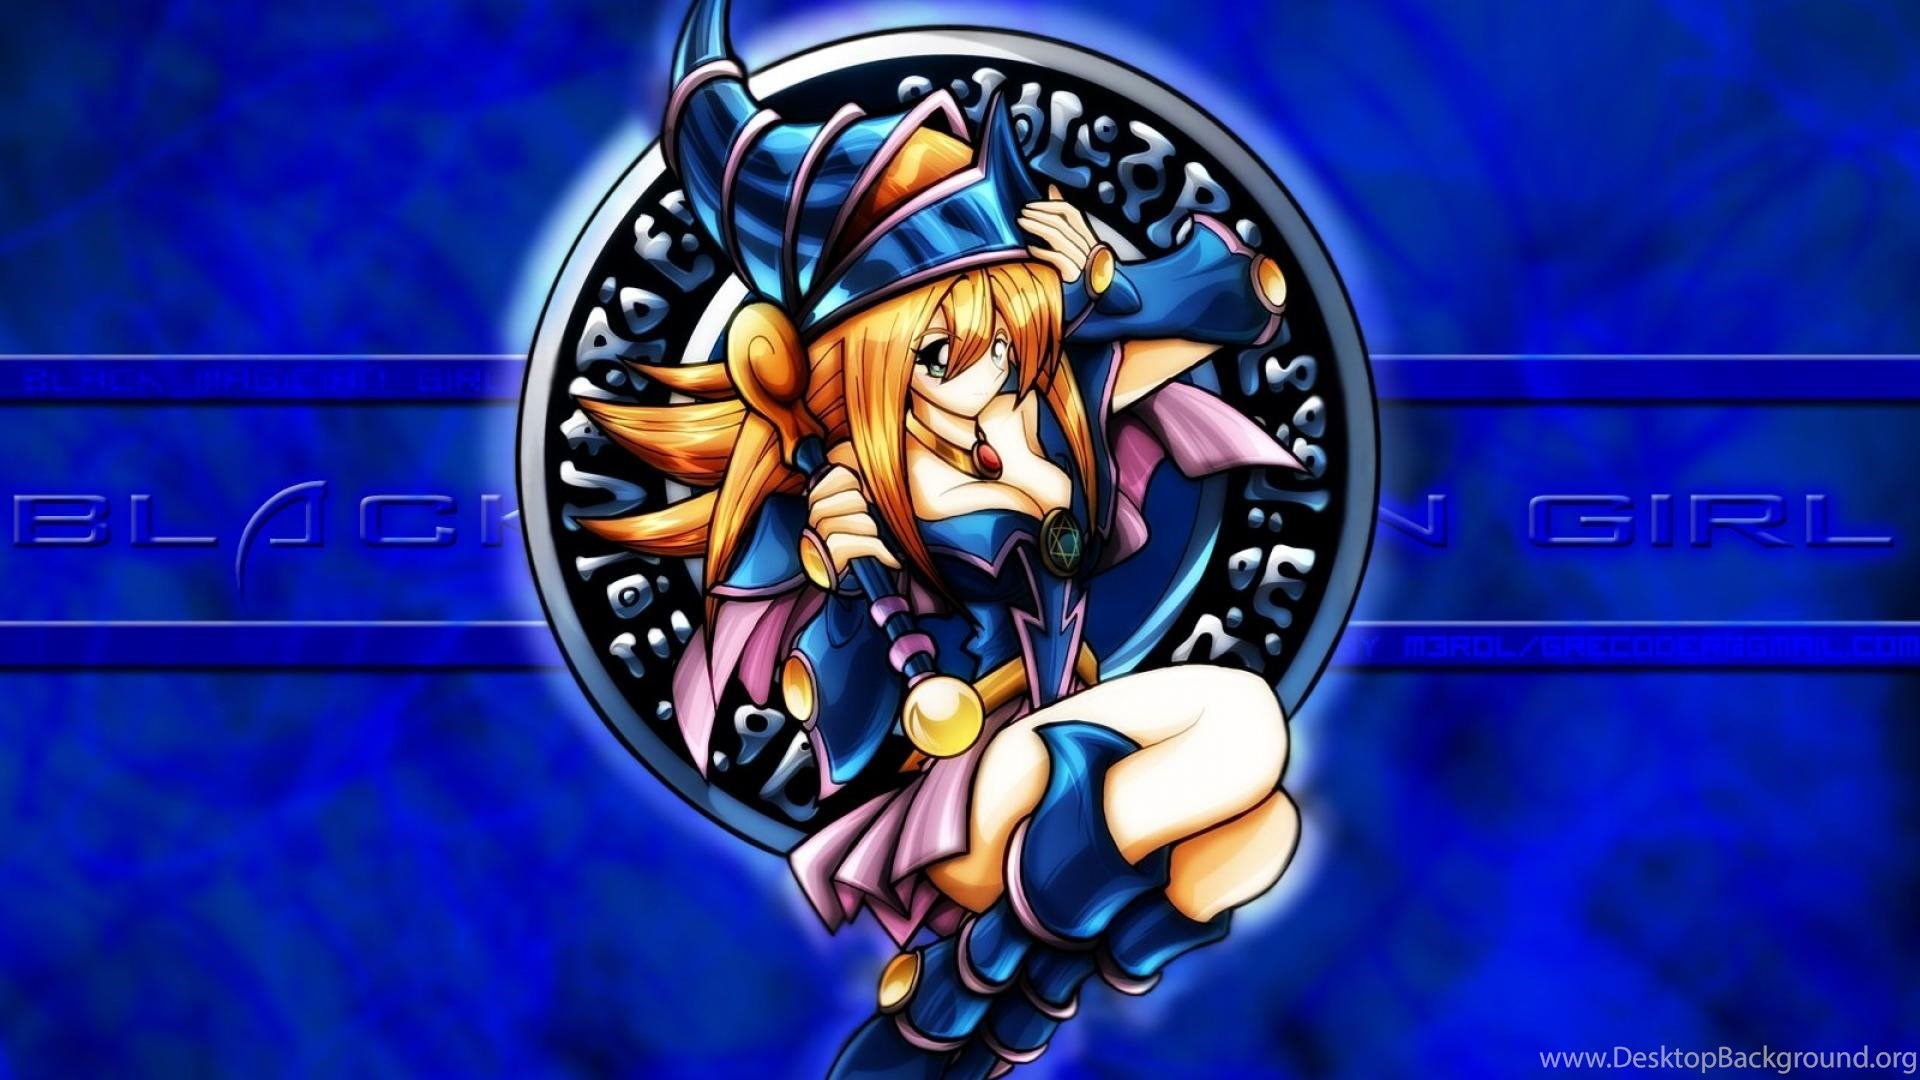 Picture 9895 yu gi oh hd anime wallpapers and desktop background popular voltagebd Gallery